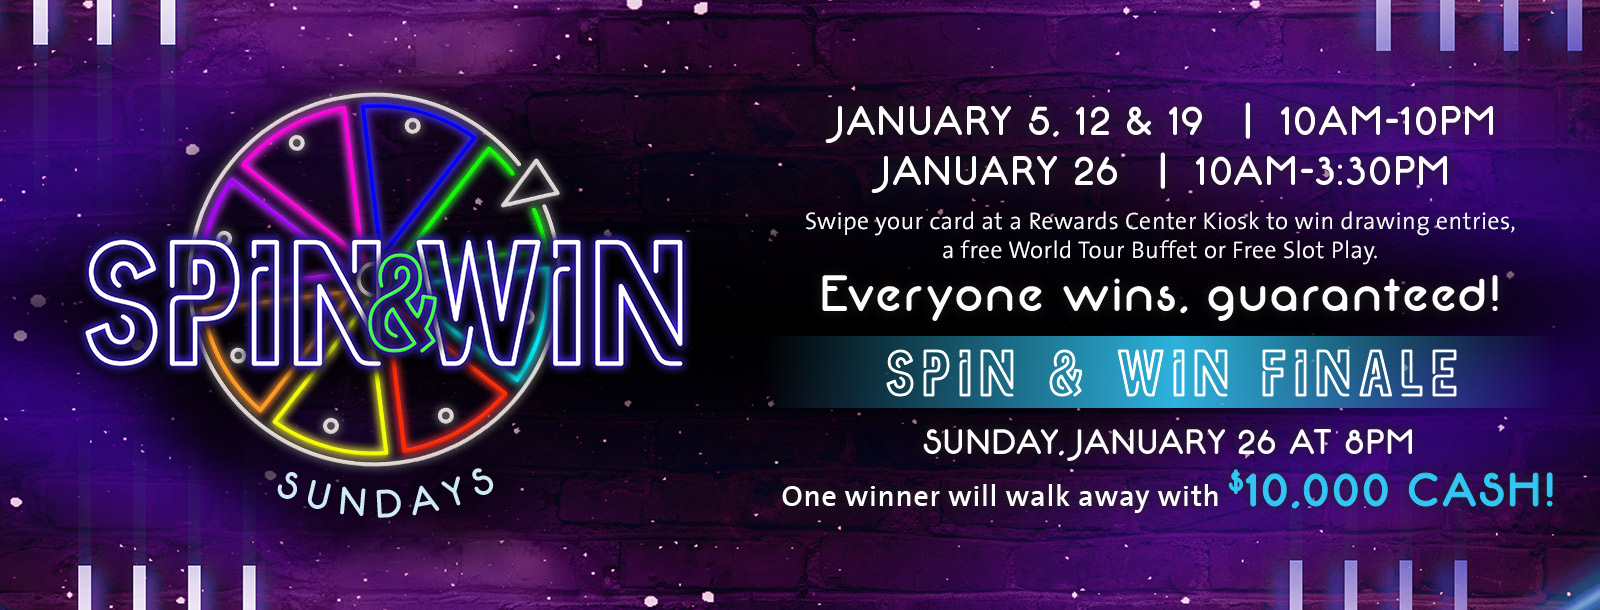 spin win sunday promotion